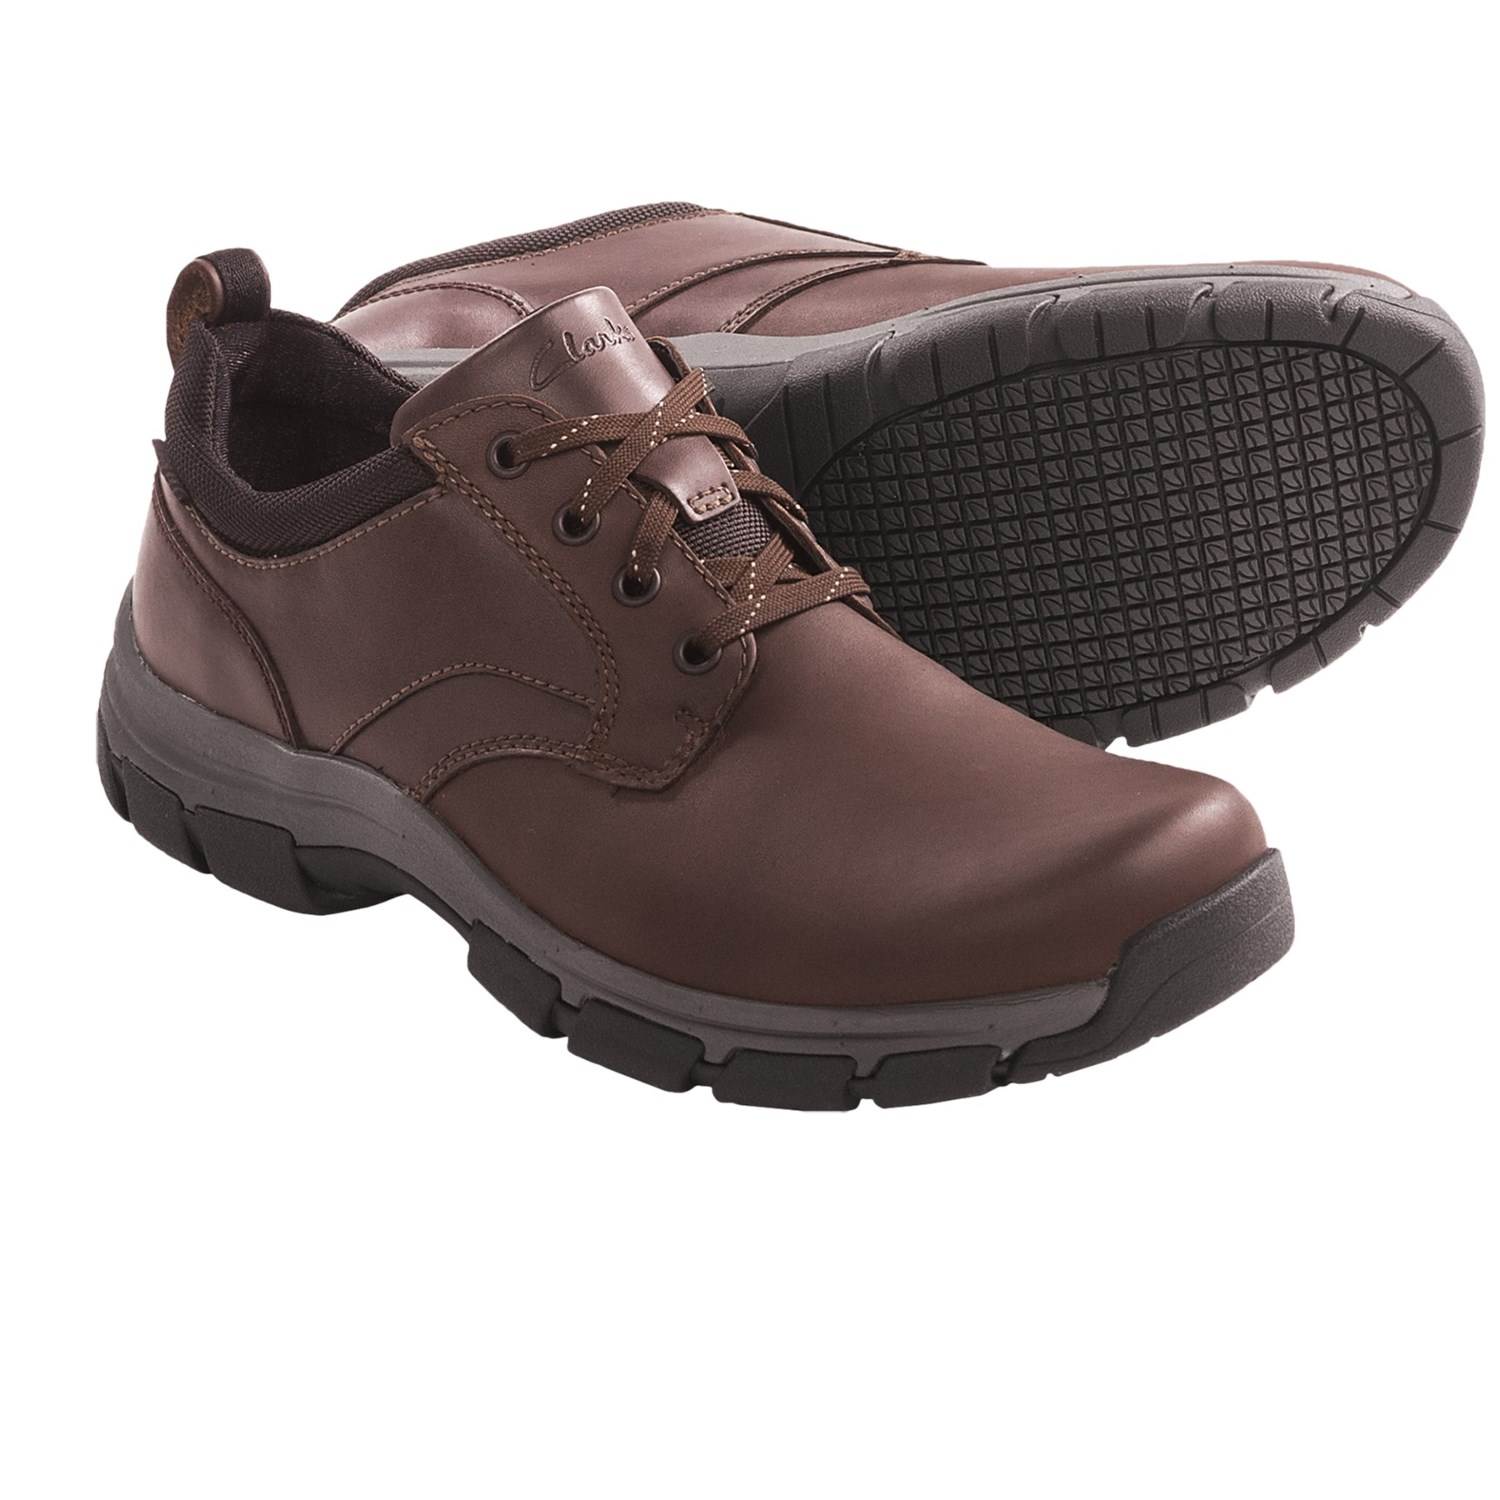 Clarks has all the shoe types you need including boots, chukkas, casual shoes, dress shoes, sneakers and more. You can find shoes from Clarks to match almost every occasion, so stock up on a few different types to make sure you're ready for anything.